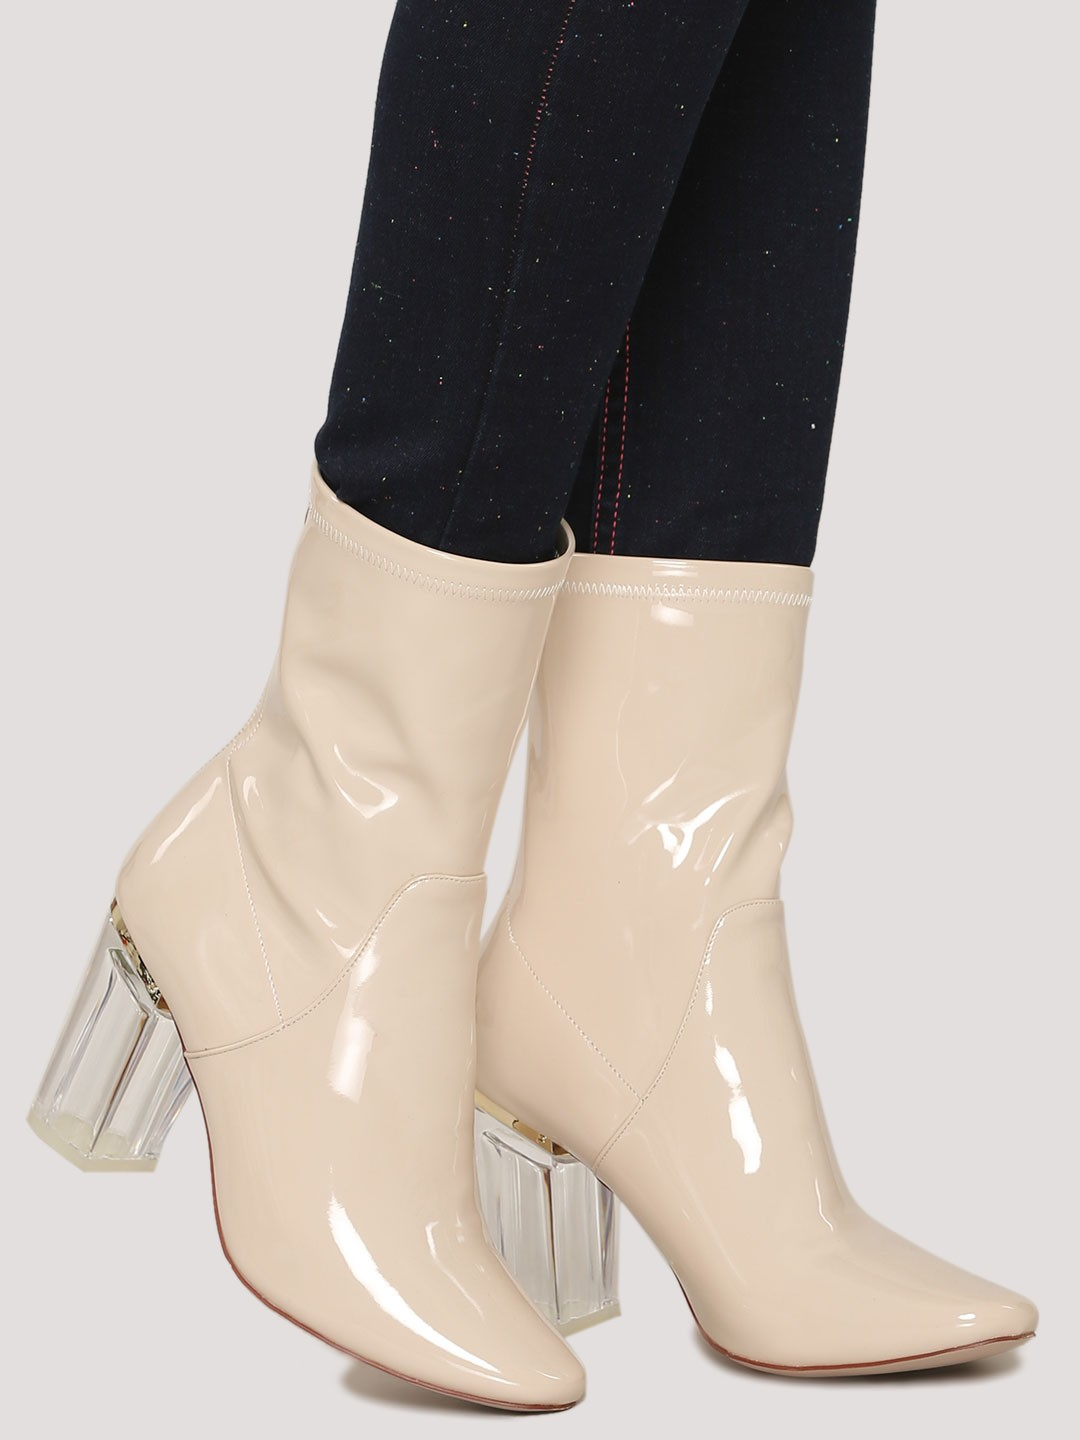 Buy Velvet Army Nude Boots With Perspex Heels For Girls Online In India-4911